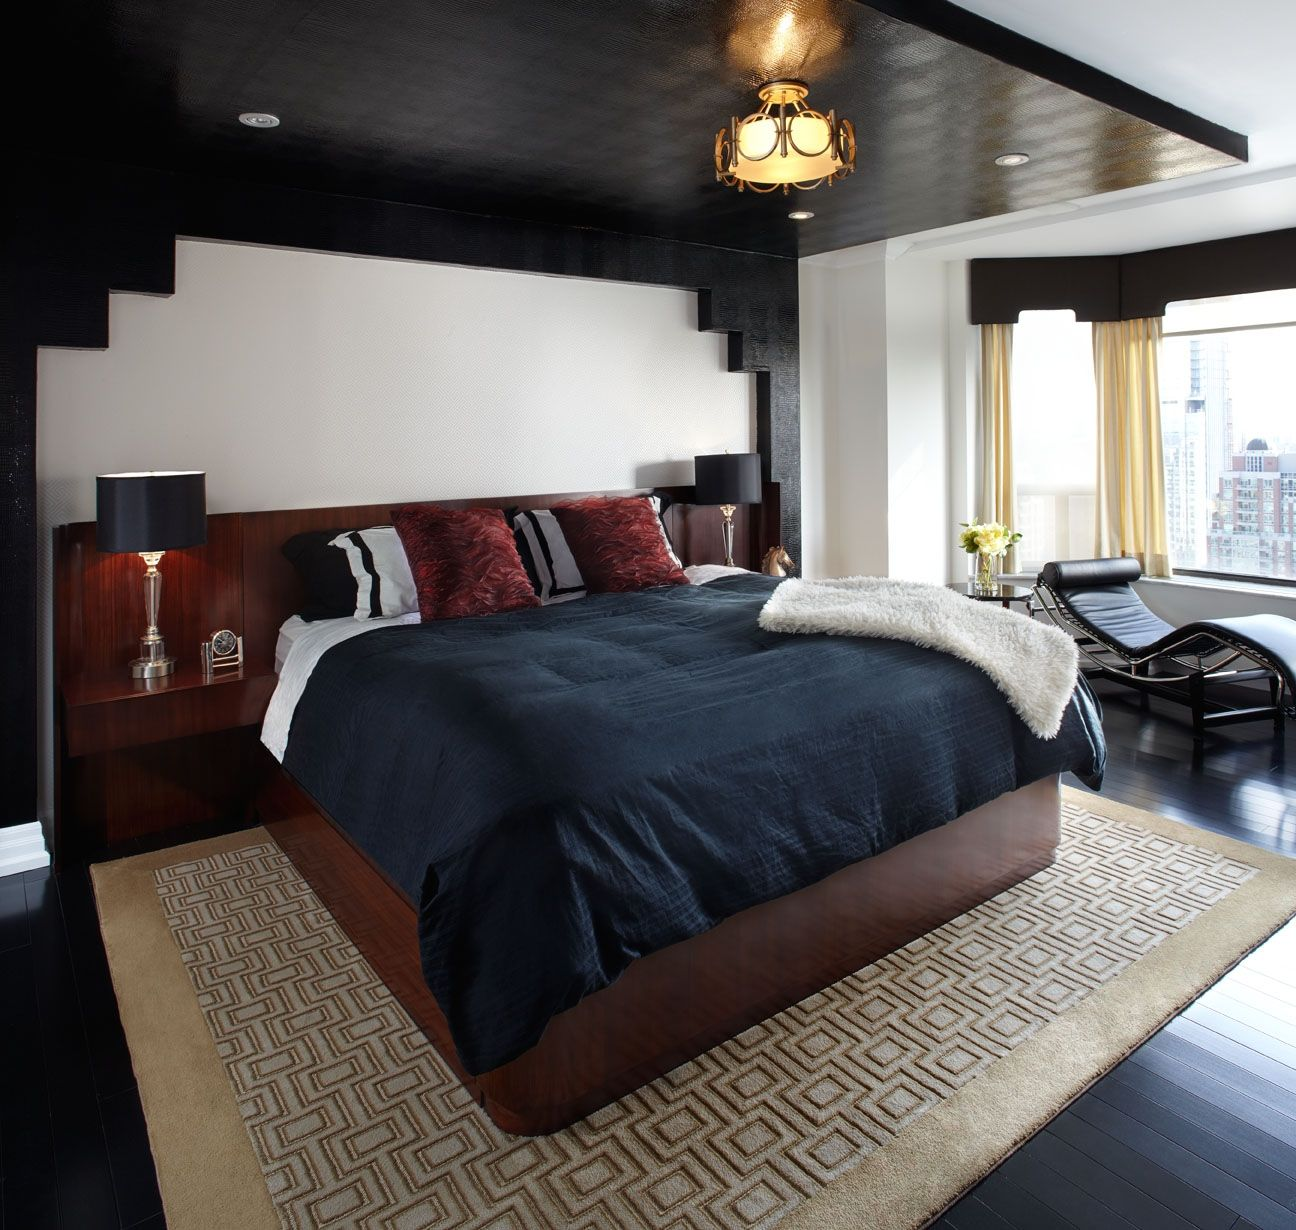 Masculine Bedroom With Black Ceiling Navy Bedspread And Built In Wood Headboard Lux Design